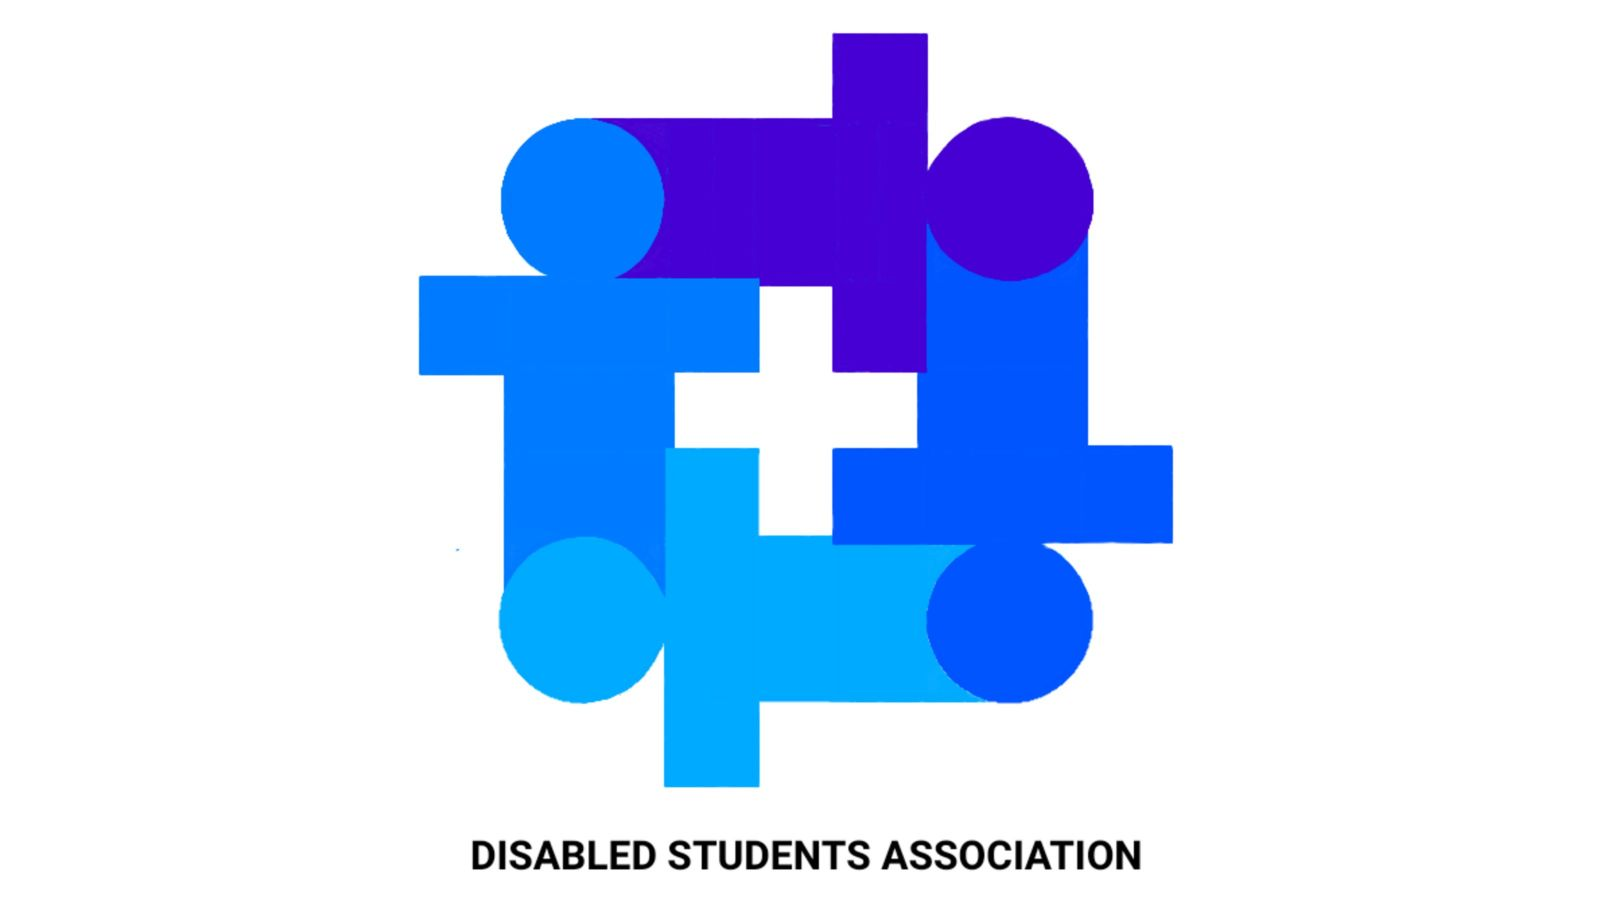 Logo of the disabled students association: four icons of humans, in different shades of blue, forming a white cross in the middle.